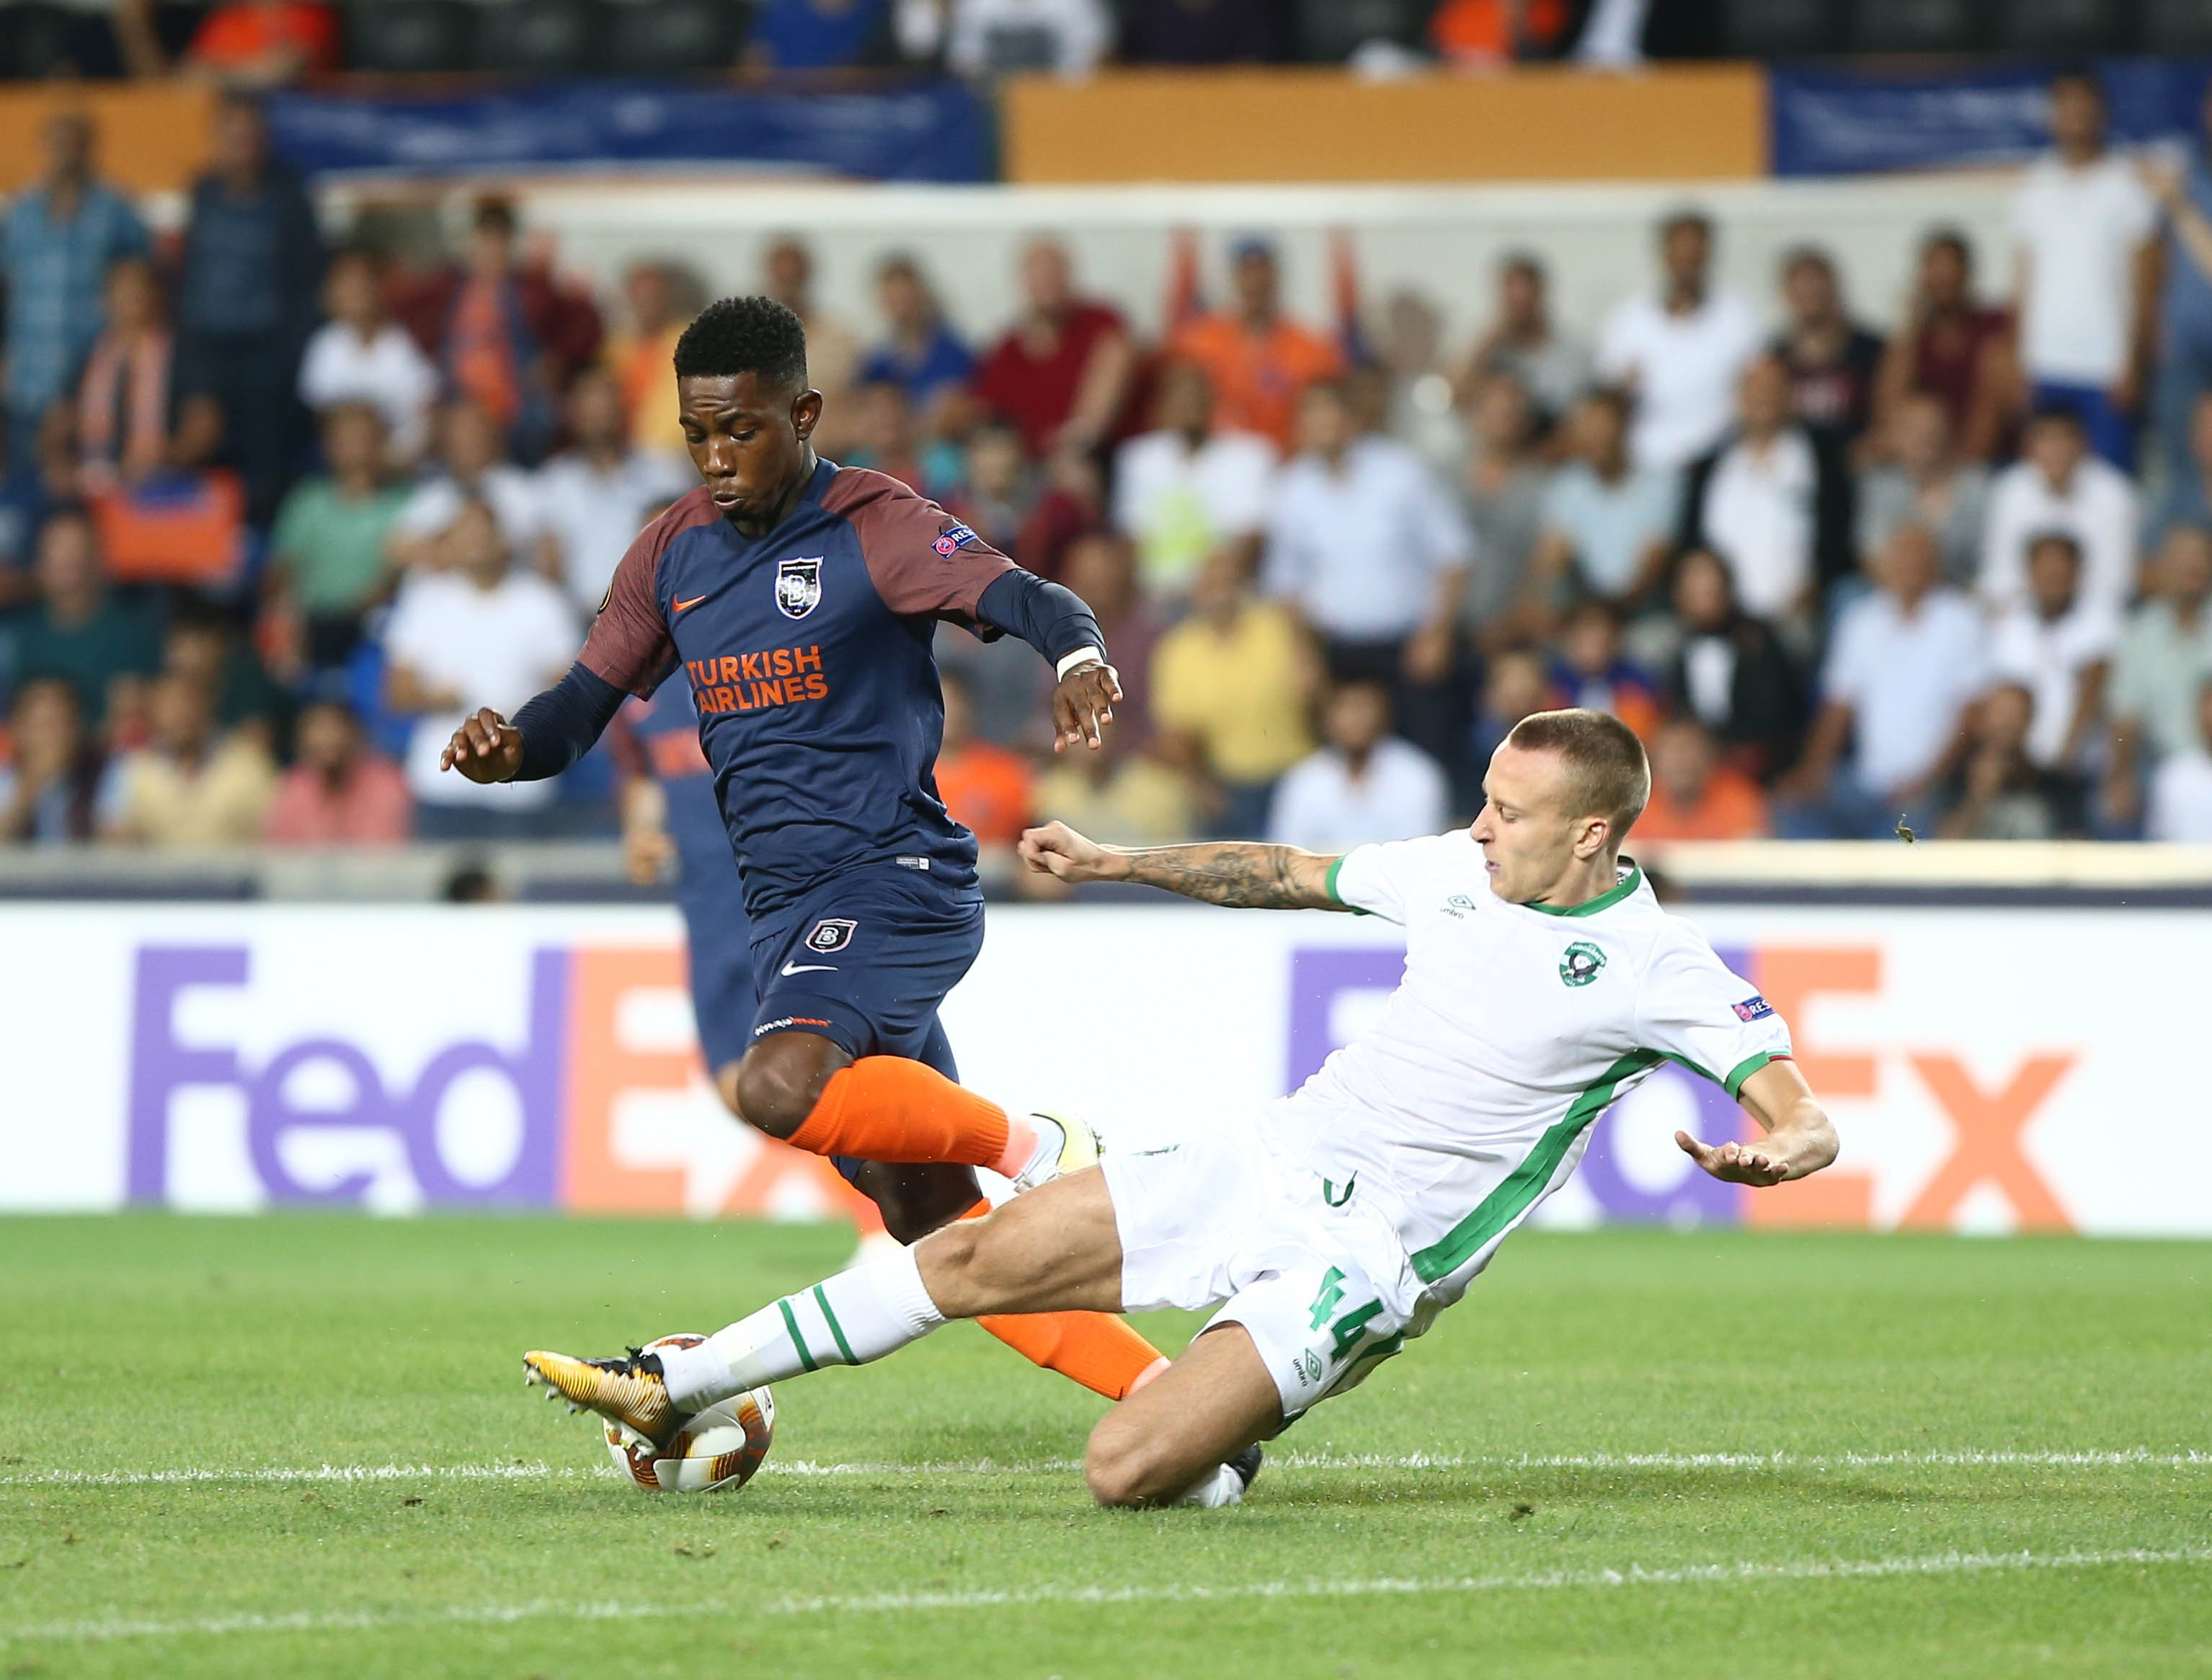 Eljero Elia of Basaksehir and Jacek Goralski of Ludogorets during the UEFA Europa League Group c match between Medipol Basaksehir and Ludogorets Razgrad at Fatih Terim Stadium in Istanbul , Turkey on September 14 , 2017. FOT. Seskimphoto / NEWSPIX.PL TURKEY, GERMANY, AUSTRIA AND UK OUT !!! --- Newspix.pl *** Local Caption *** www.newspix.pl mail us: info@newspix.pl call us: 0048 022 23 22 222 --- Polish Picture Agency by Ringier Axel Springer Poland